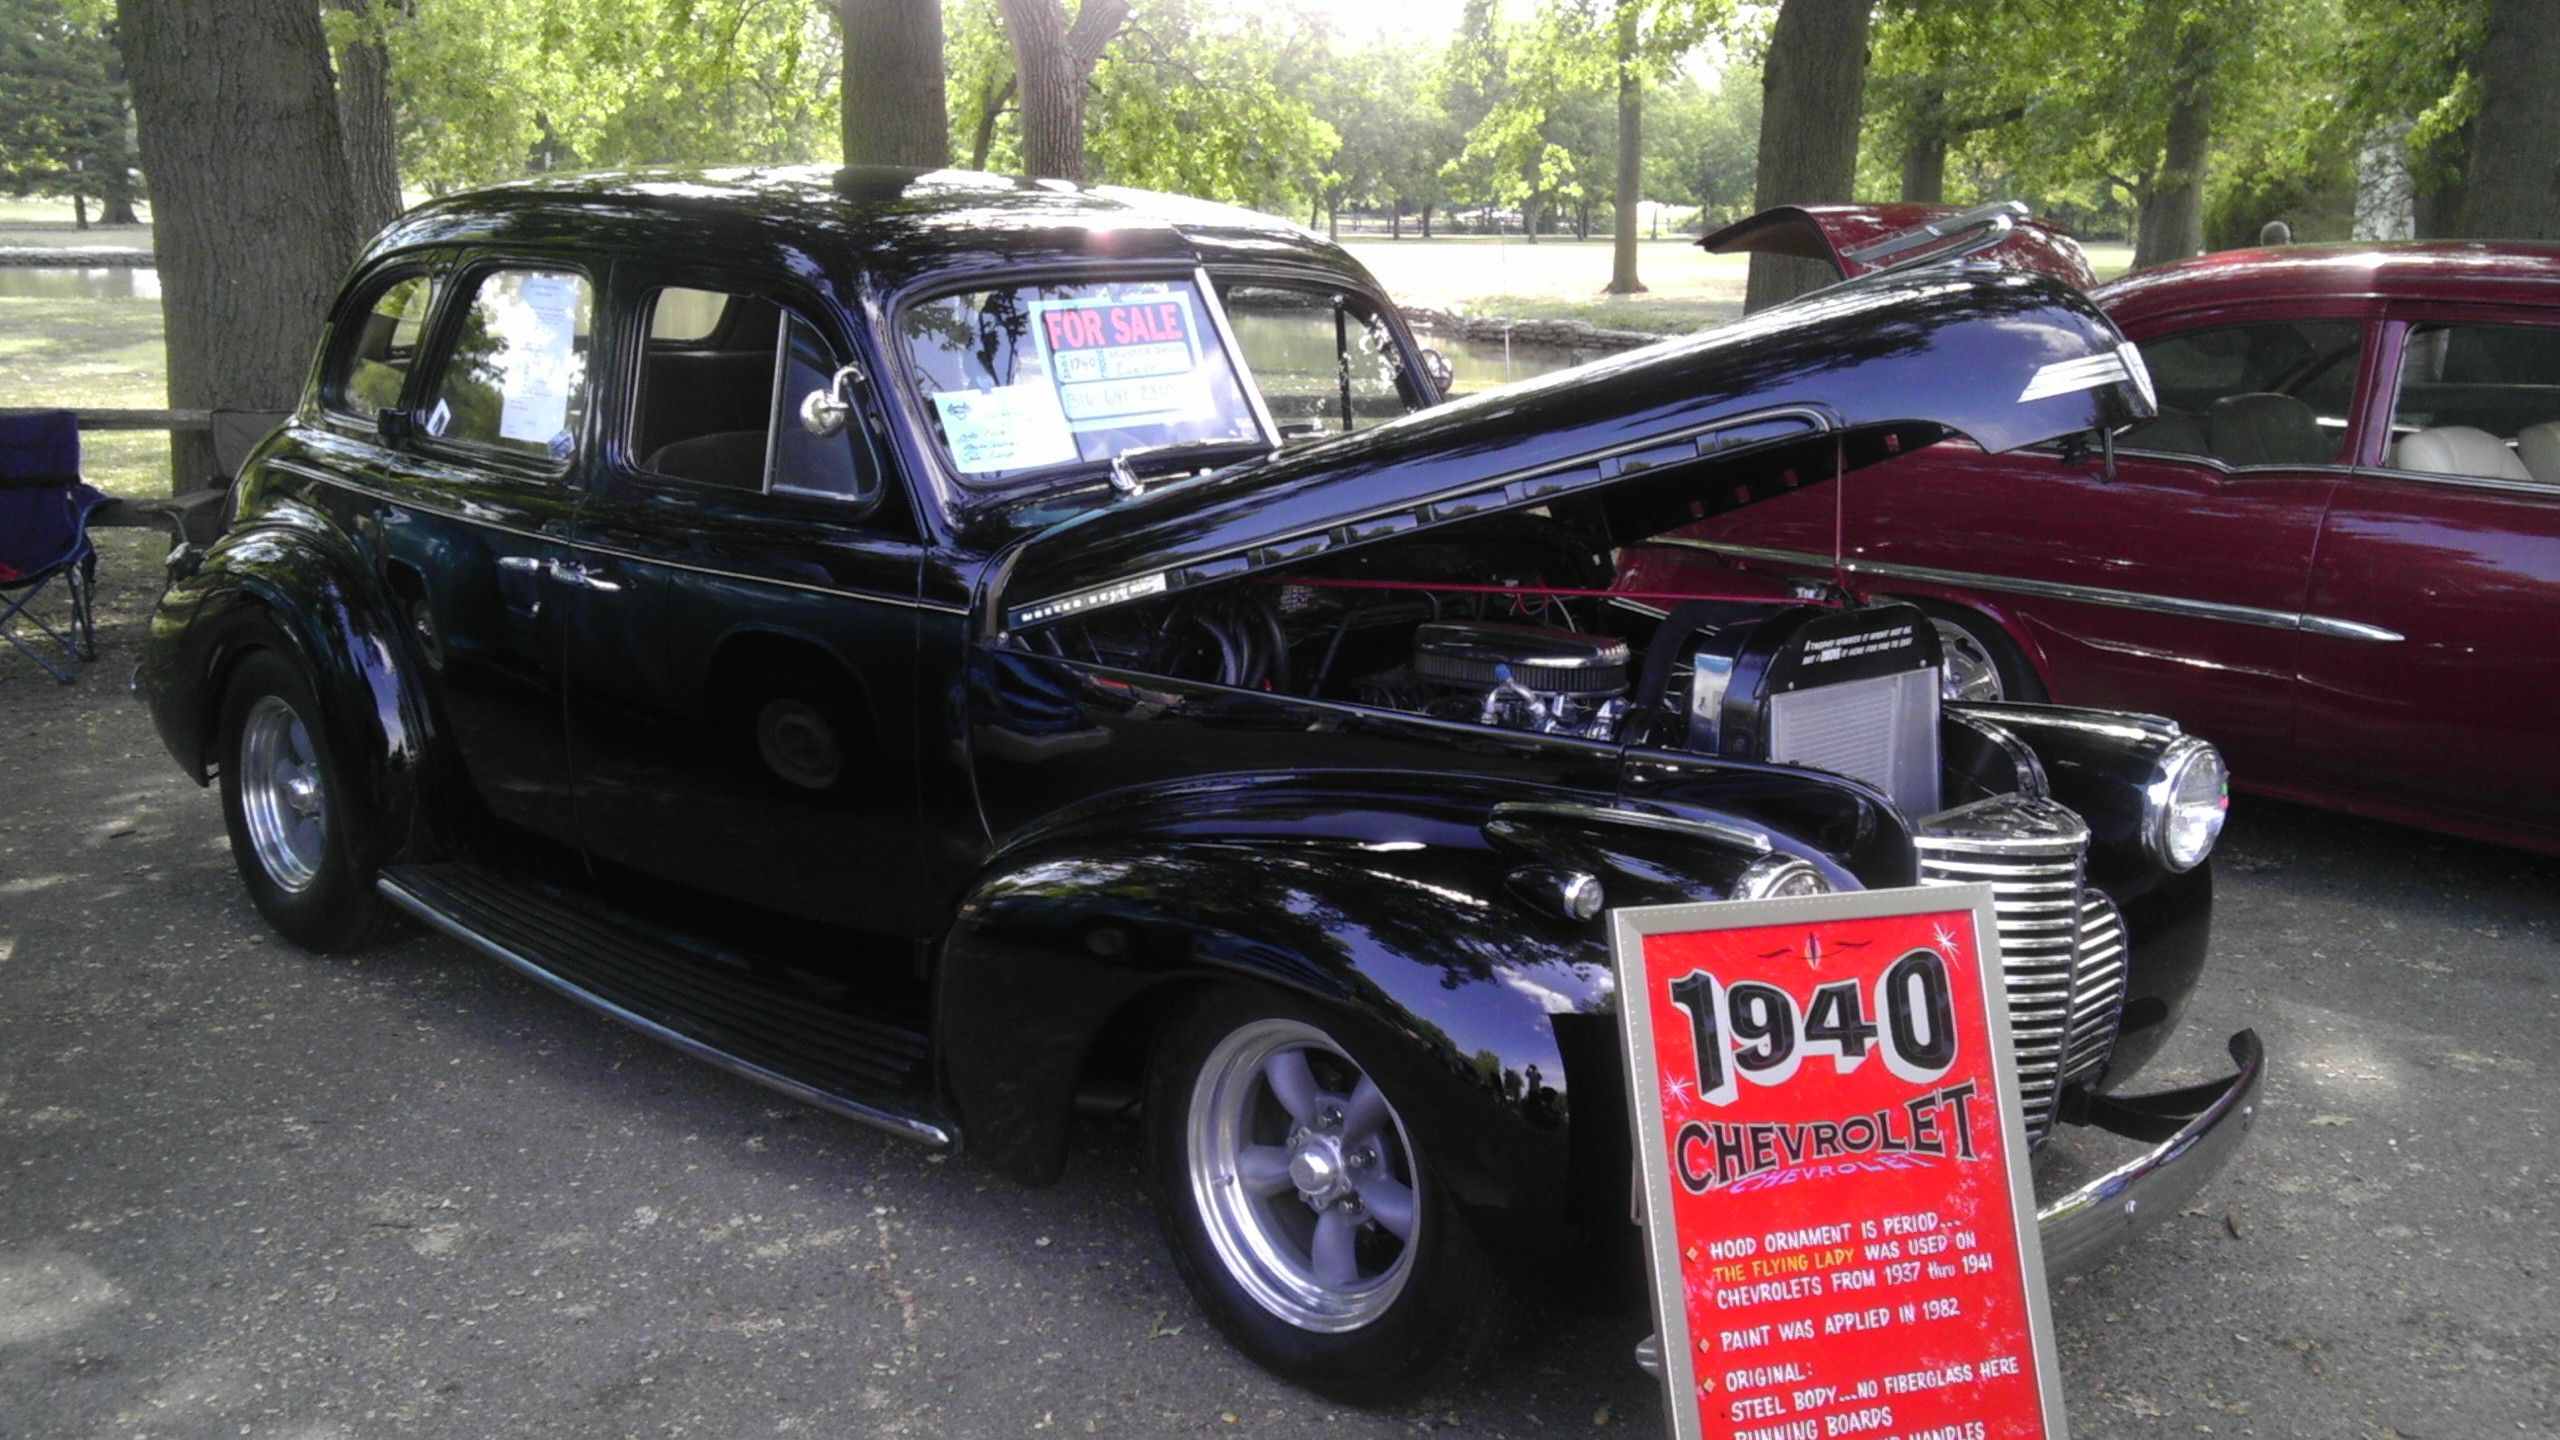 1940 chevrolet 4 door sedan street rod for sale at www motorntv com